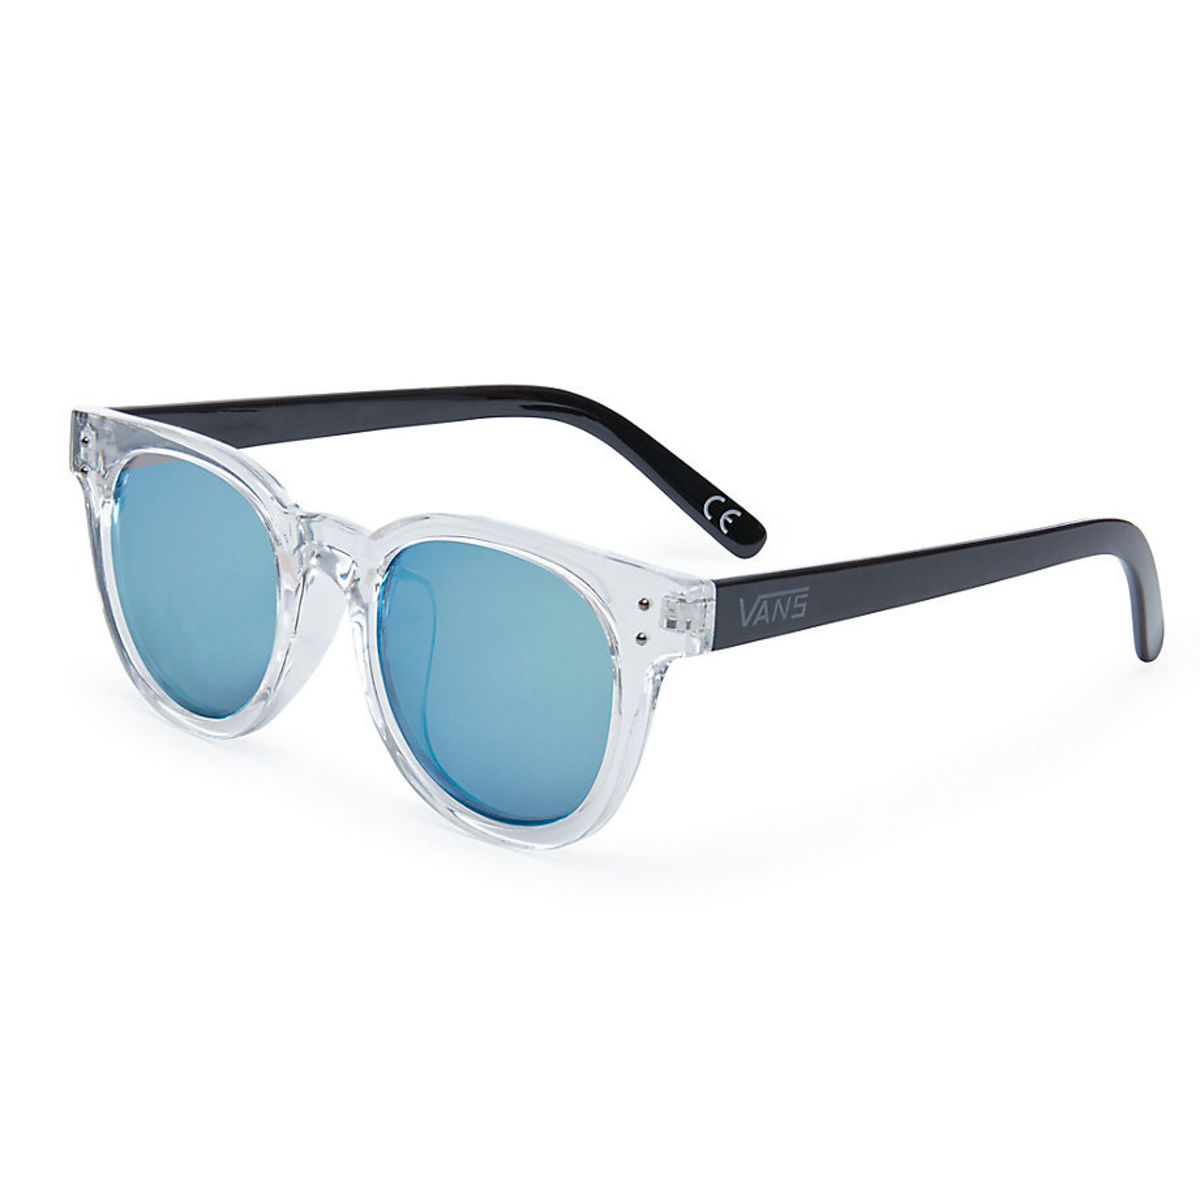 08c108a969 Sunglasses VANS - MN WELBORN SHADES - Clear Transl - V005YOCTI ...